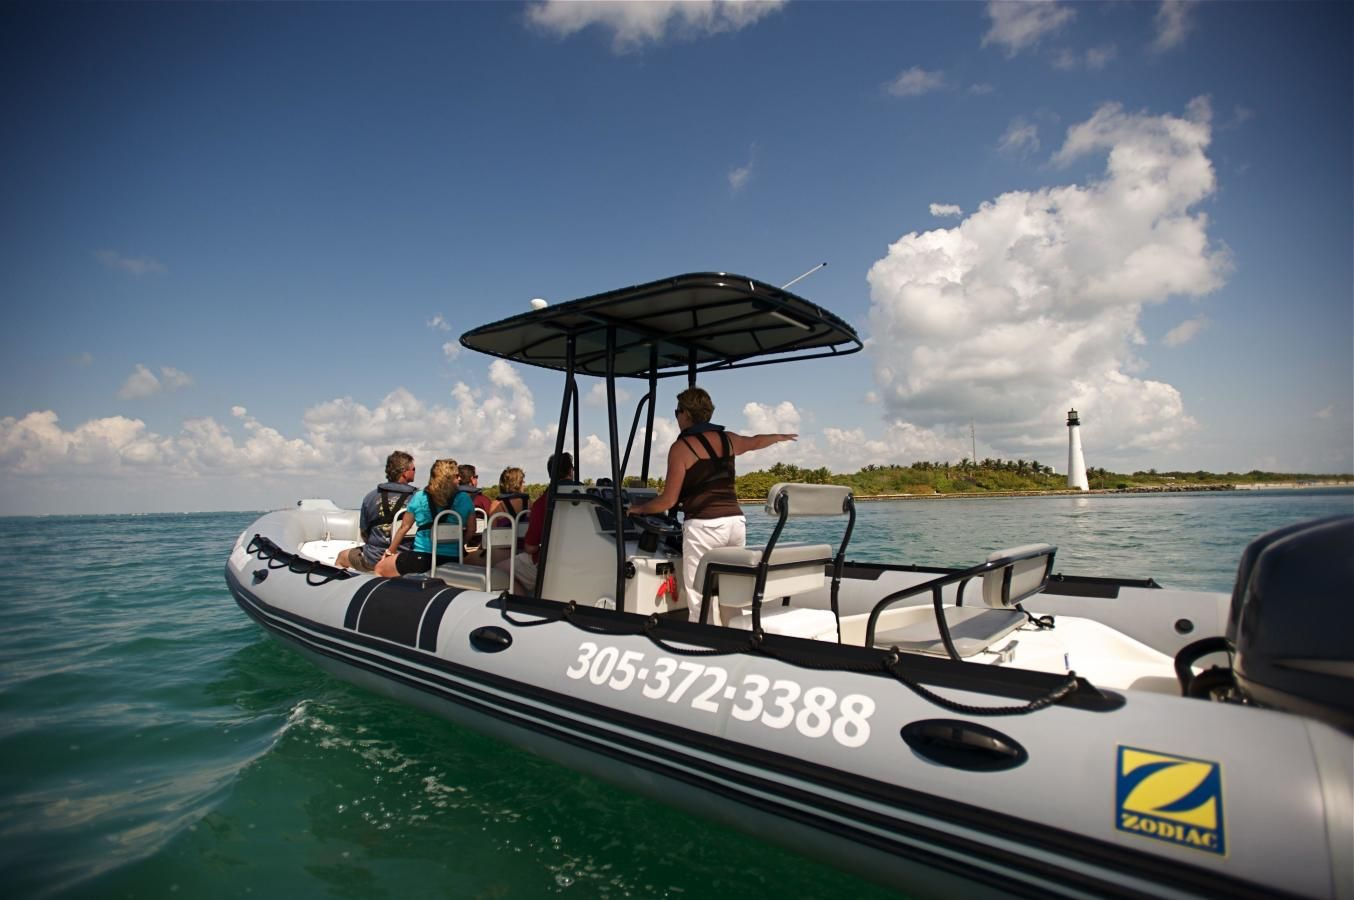 Ocean Force Adventures visiting Cape Florida Lighthouse on Key Biscayne